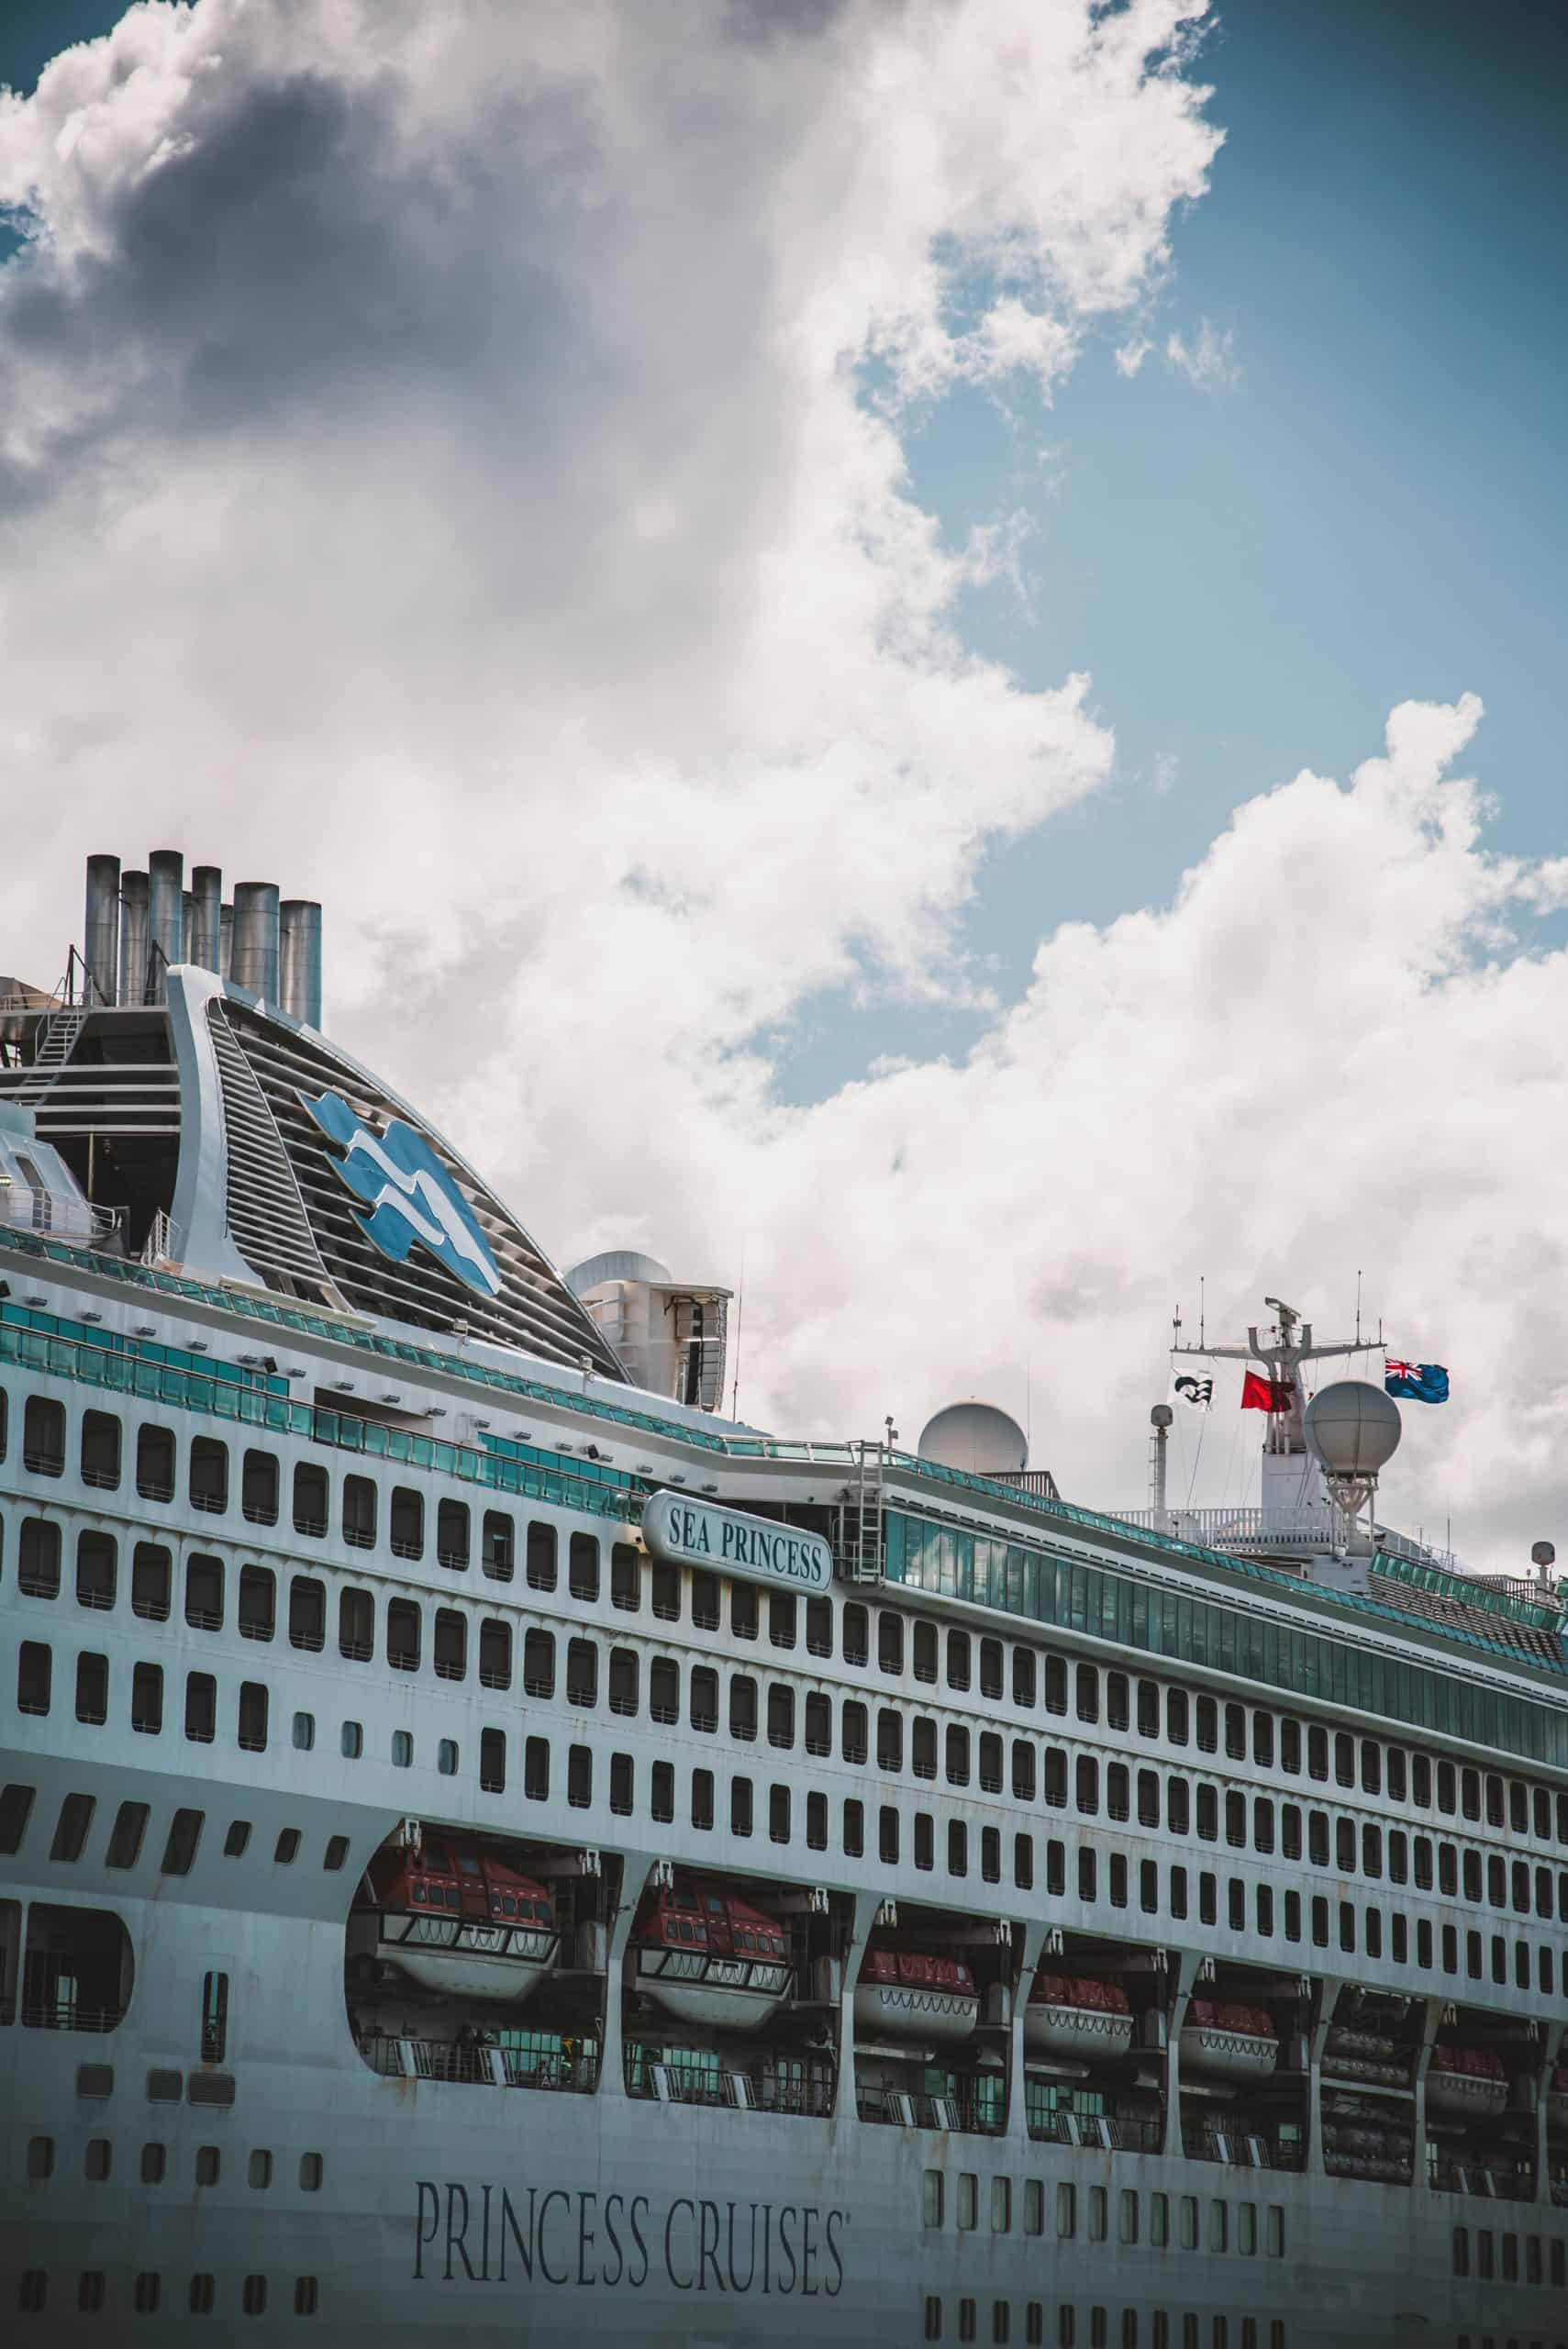 Top 4 Cruises To Bermuda You Should Travel For Best Luxury Experience